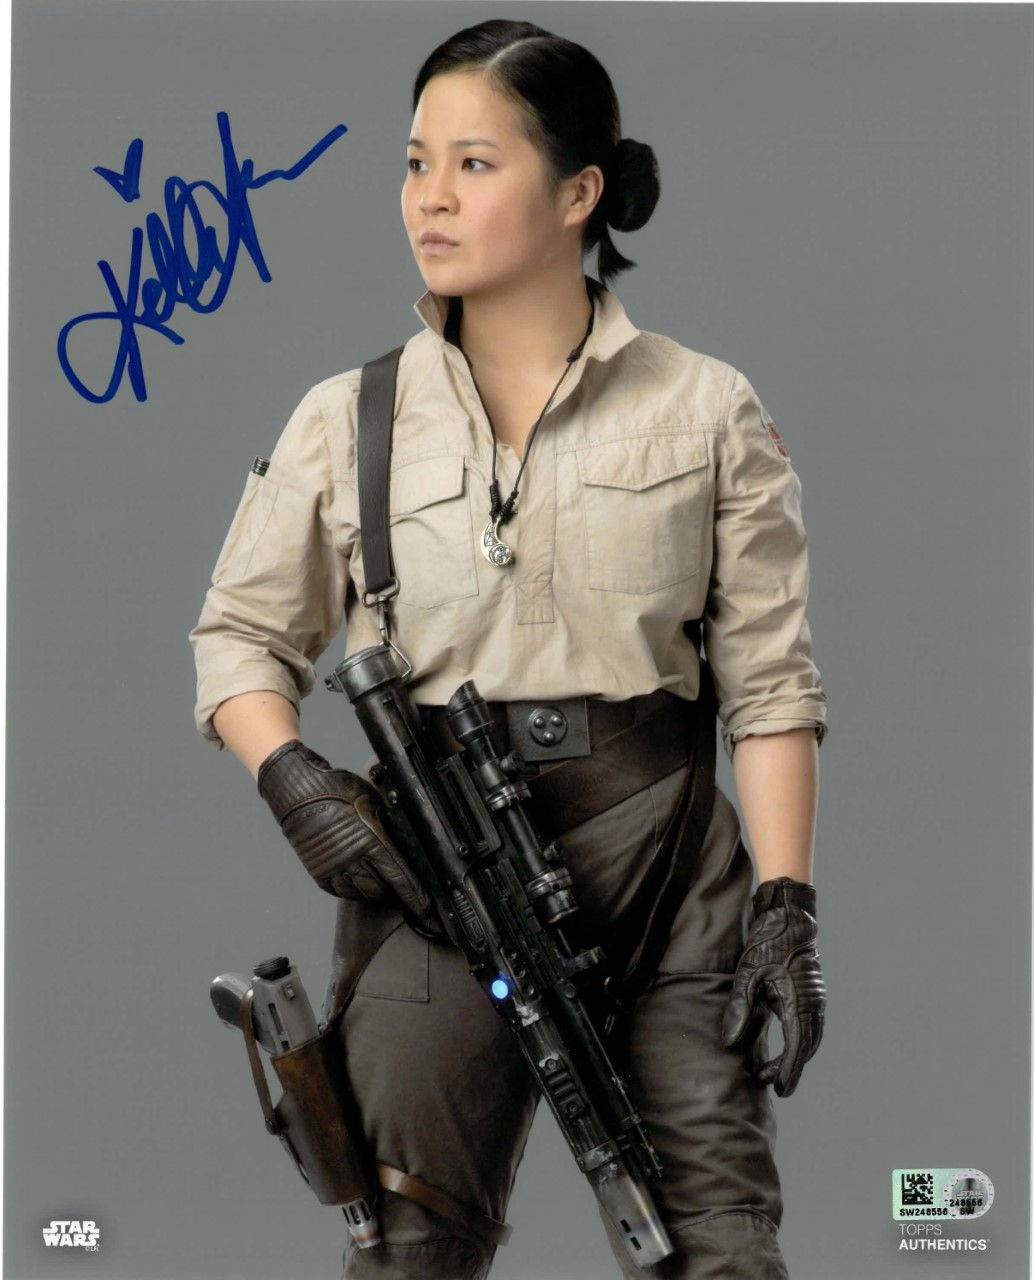 Star Wars Kelly Marie Tran TROS